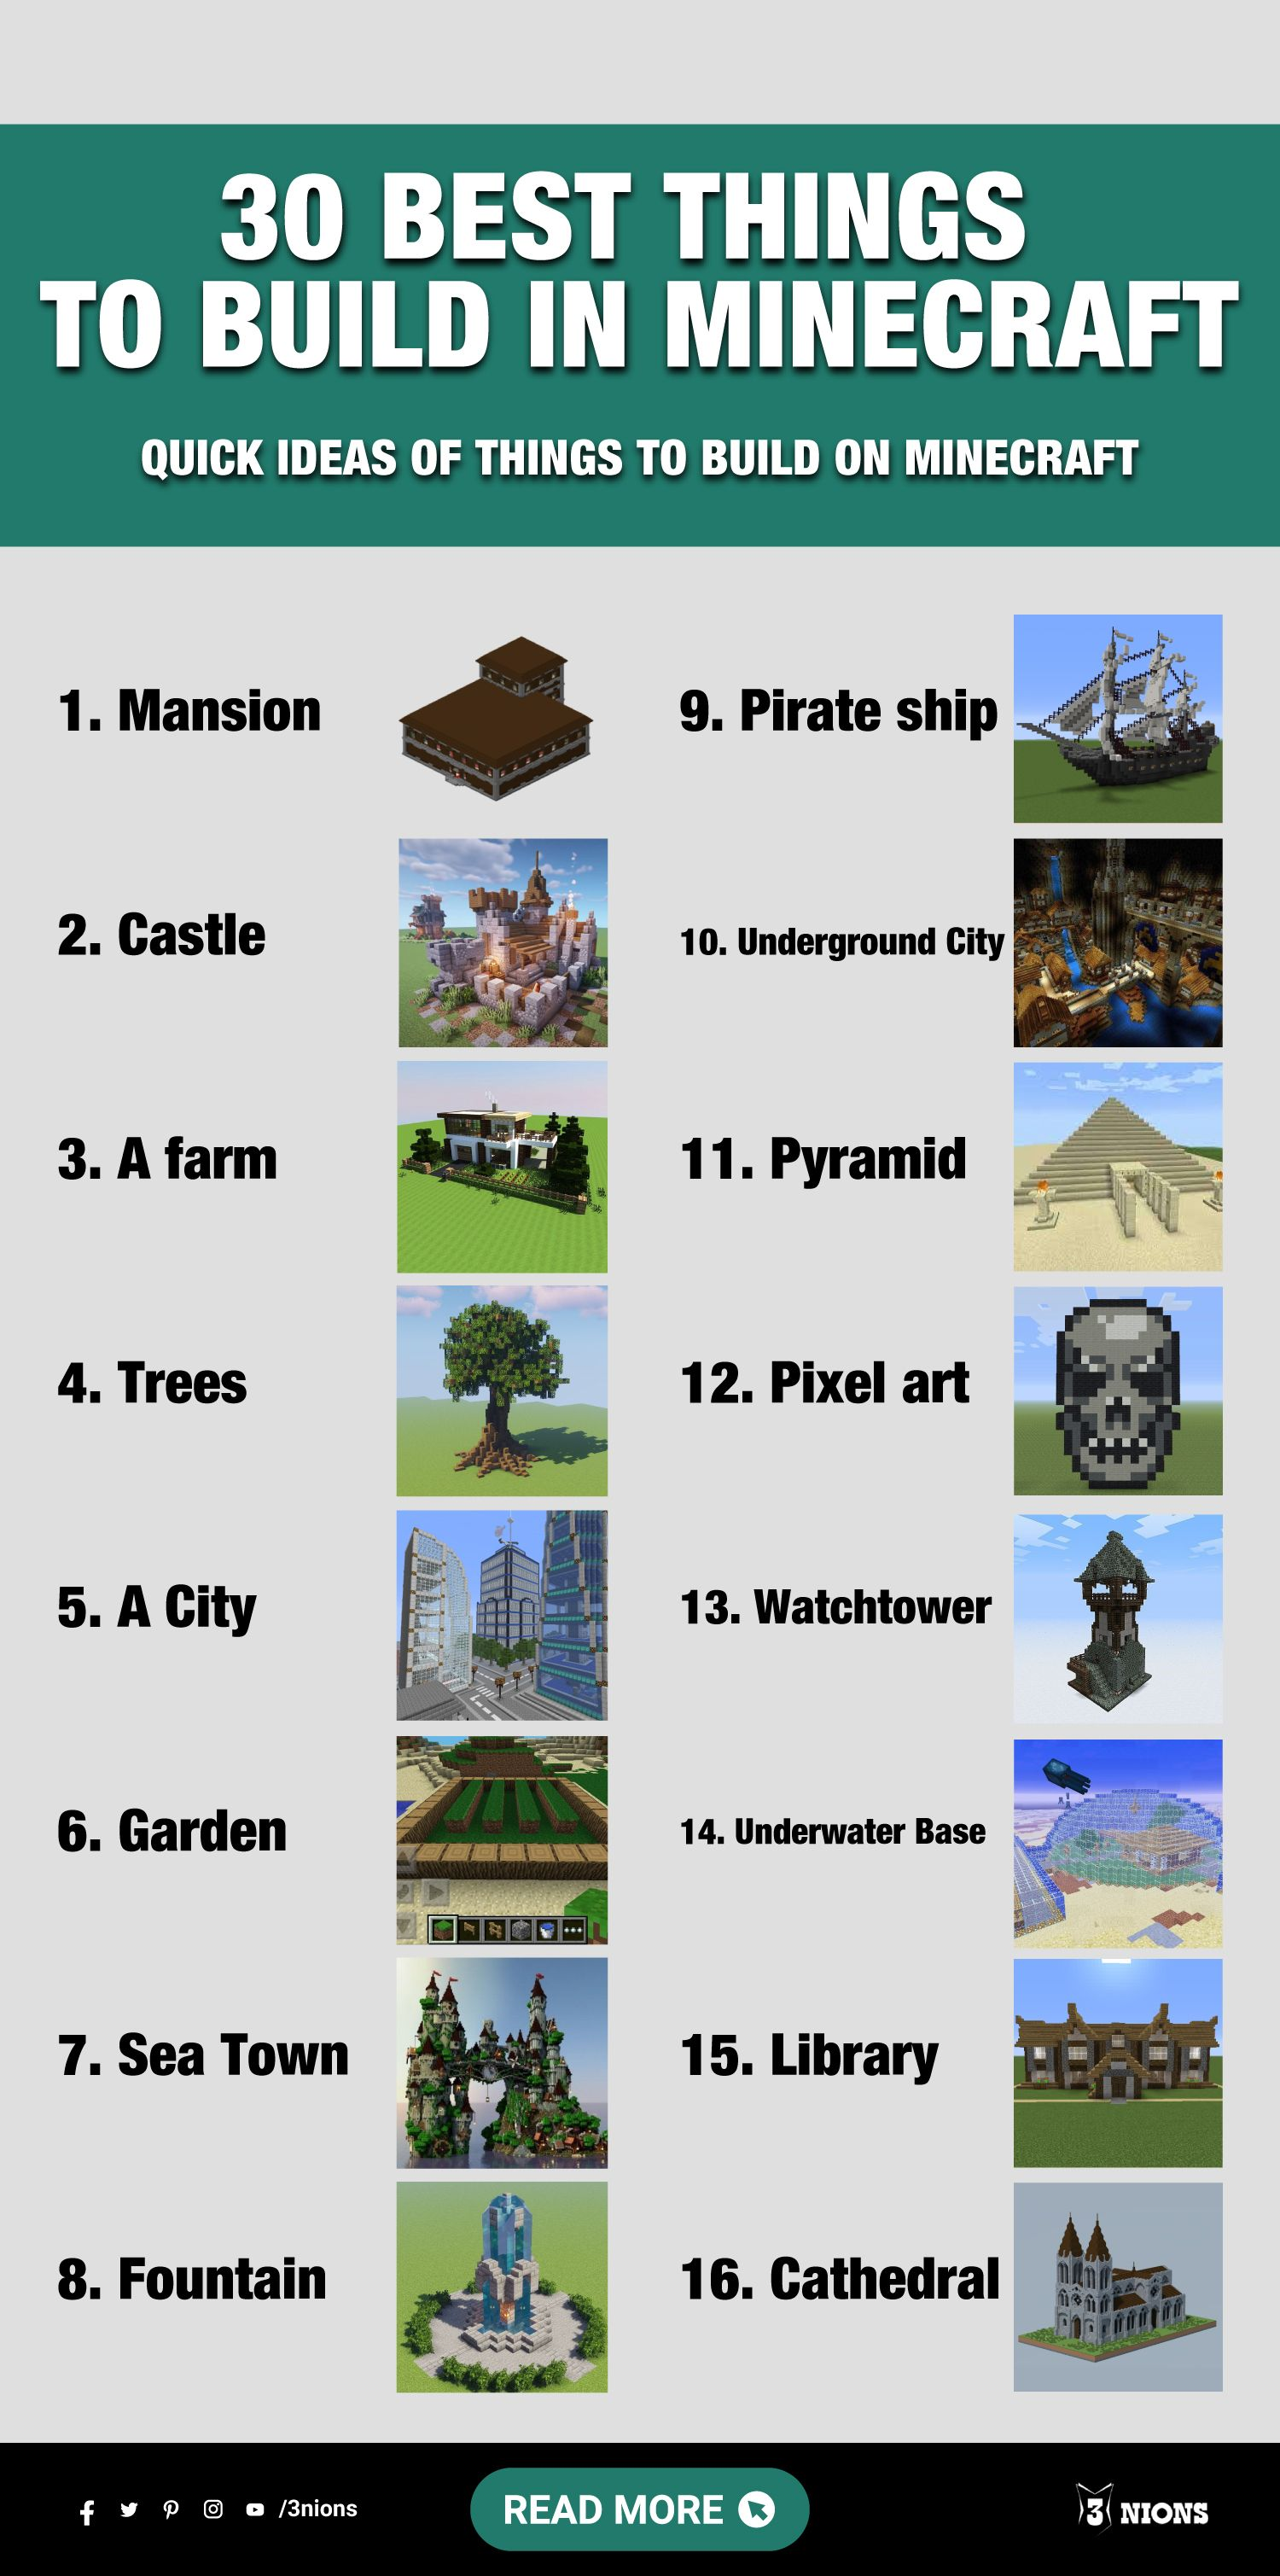 30 Best Things to Build in Minecraft Quick Ideas of Things to Build on Minecraft